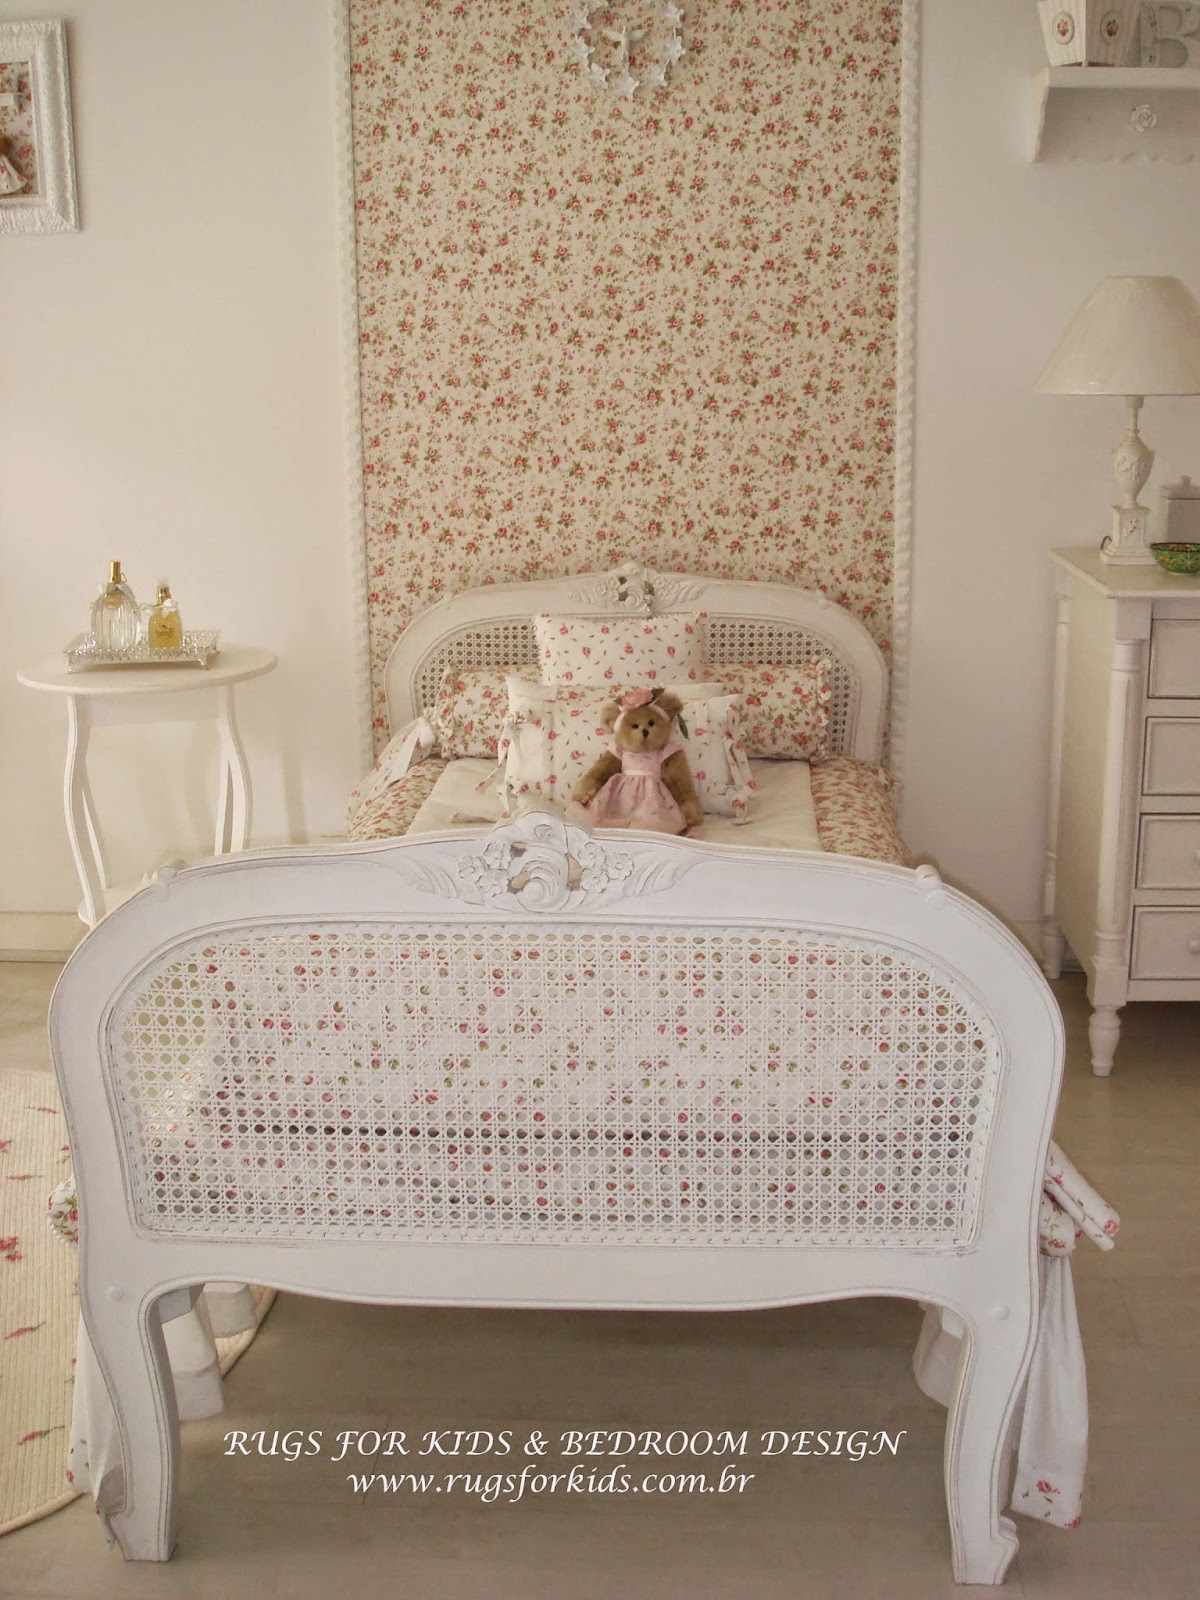 Rugs for kids and bedroom design camas proven ais loja for Carpet for kids bedroom